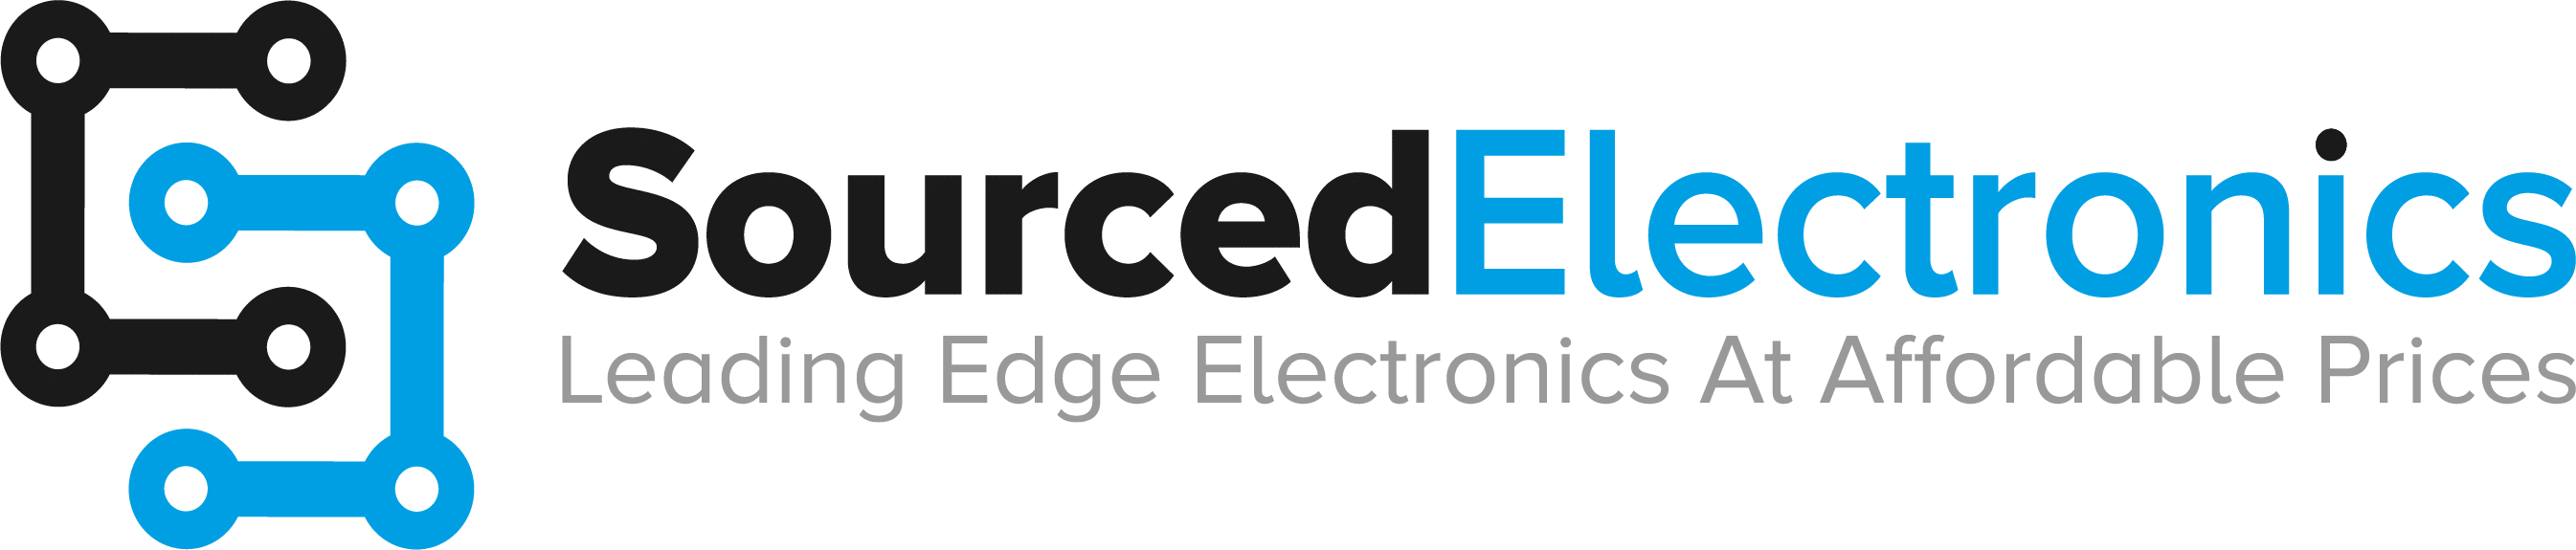 Sourced Electronics